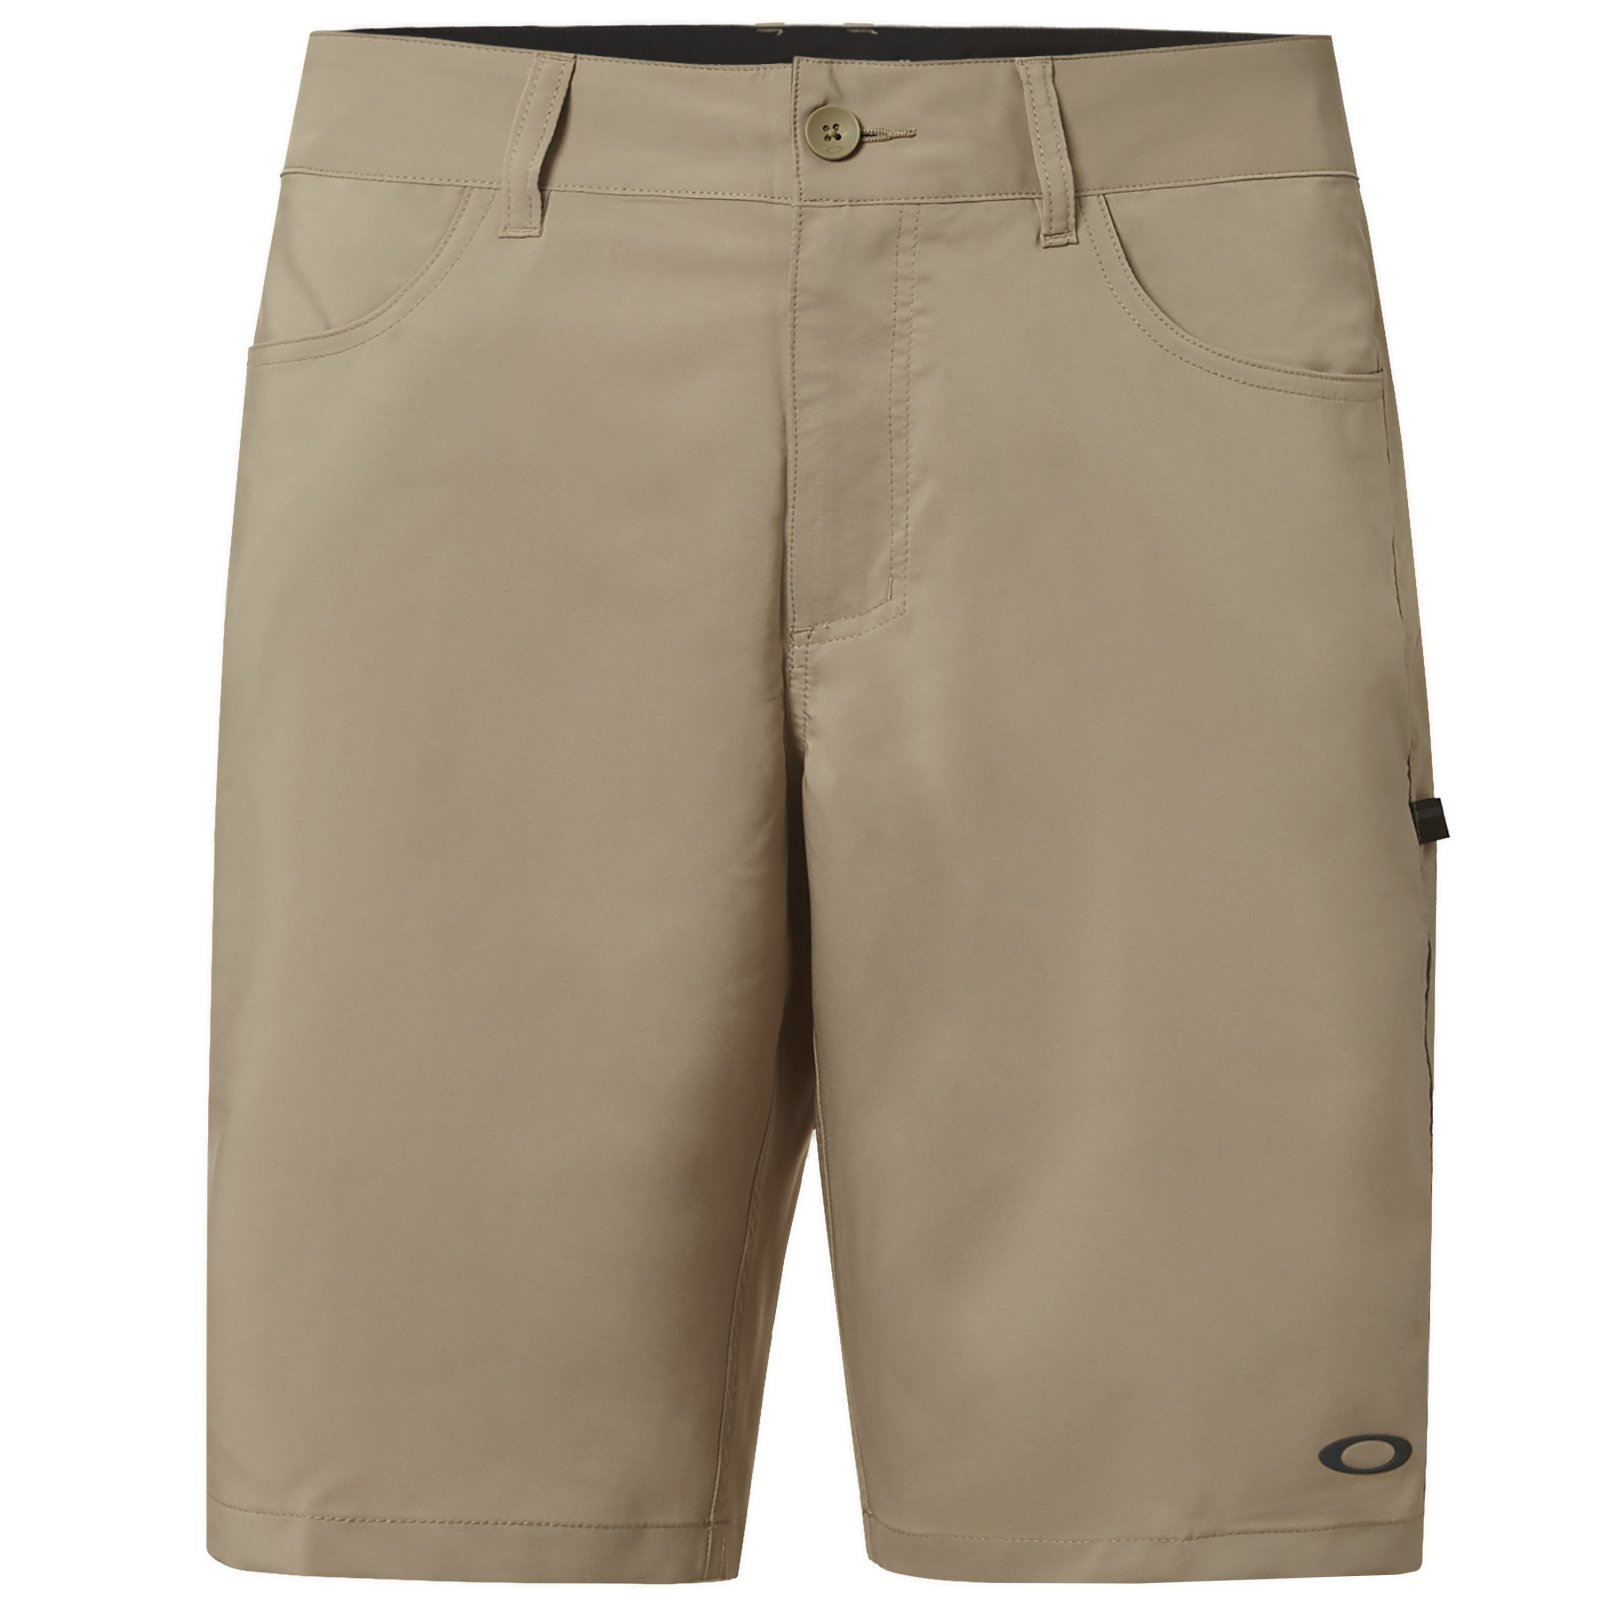 Oakley Base Line Hybrid 21 Short